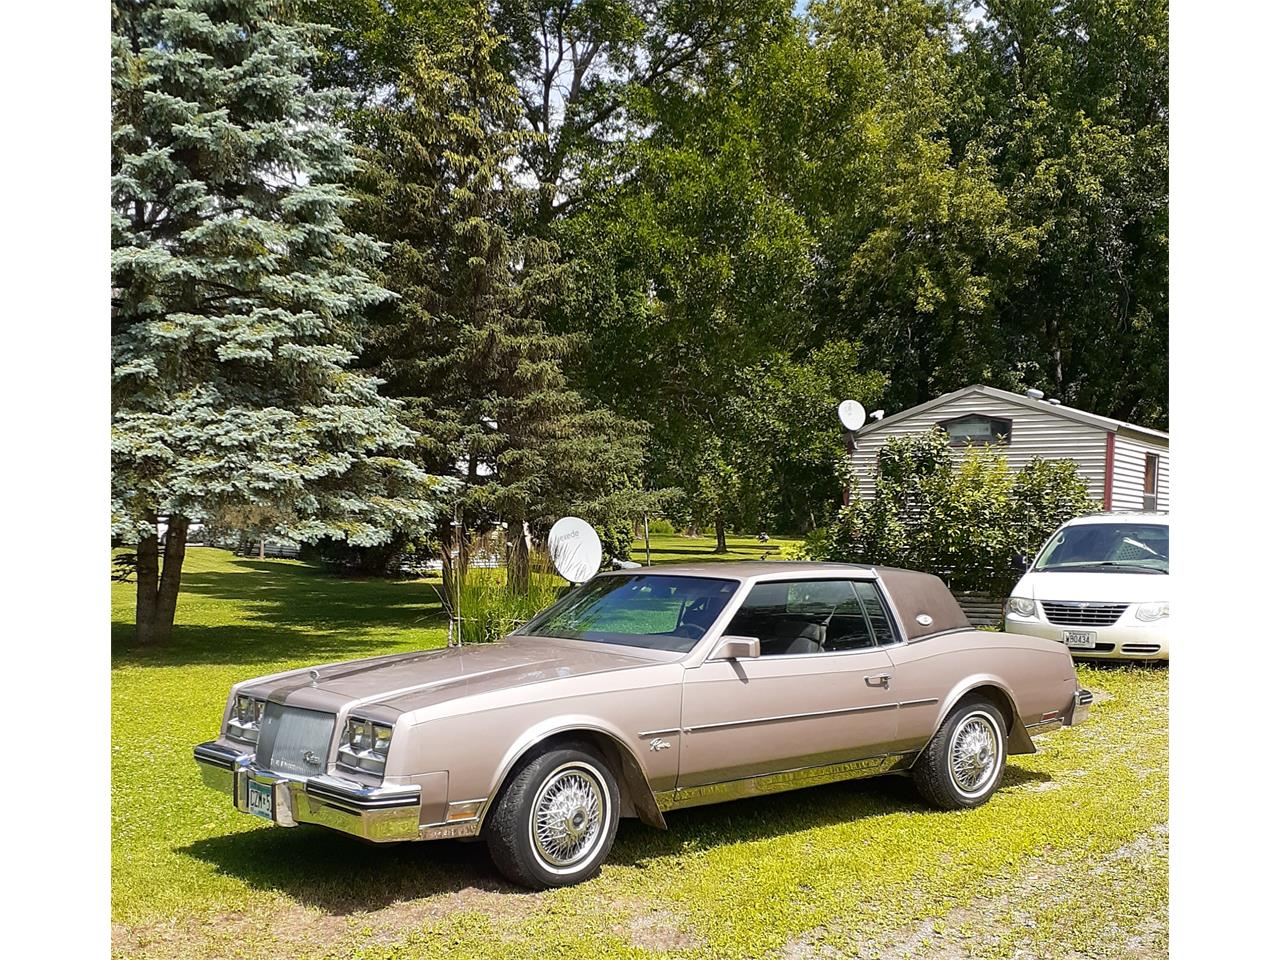 1984 Buick Riviera (CC-1367529) for sale in Osakis, Minnesota